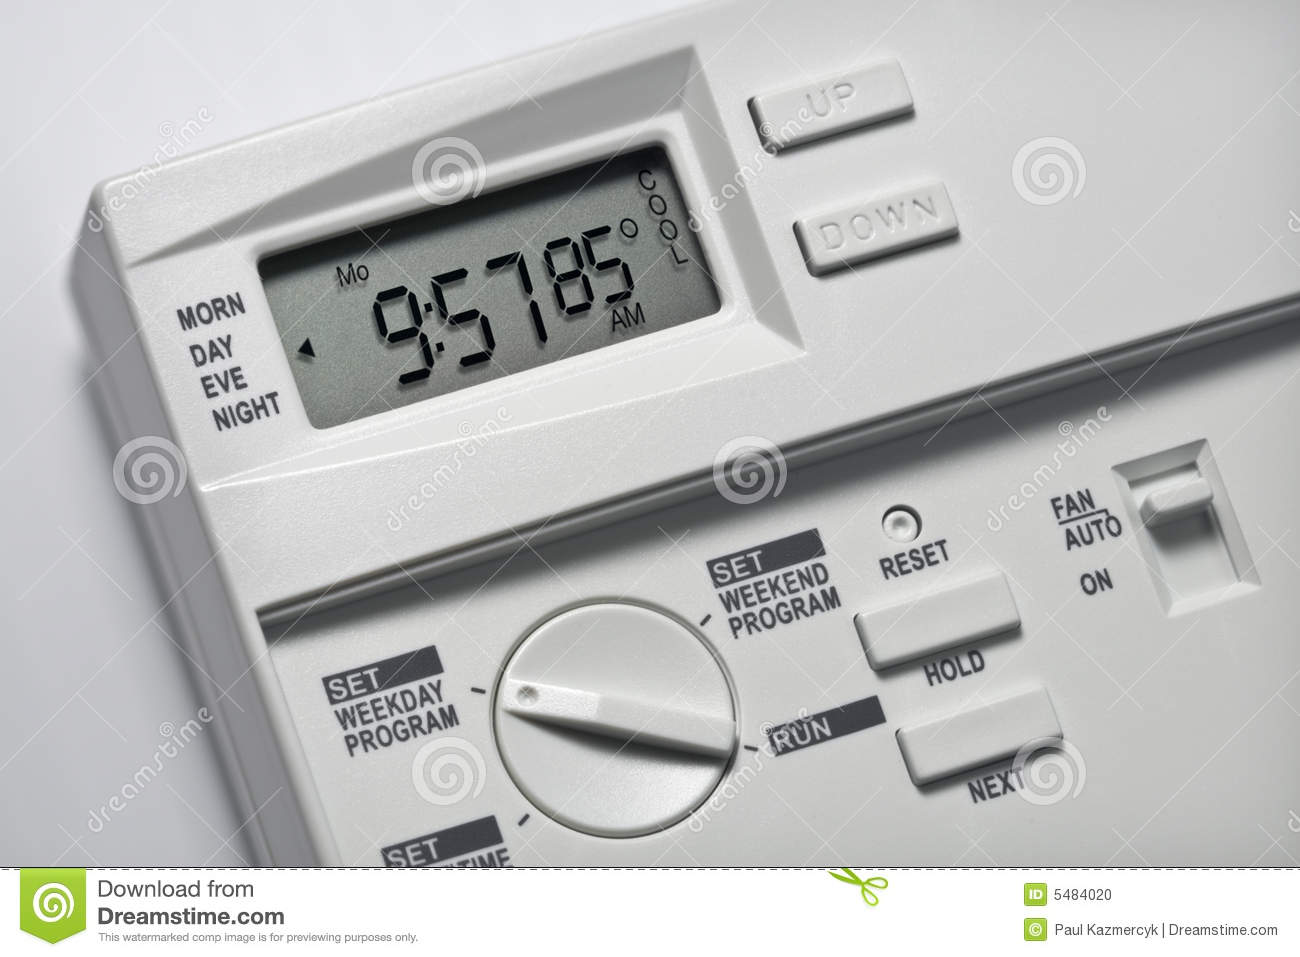 Thermostat 85 degrees cool stock photo image 5484020 for Heat setting for home